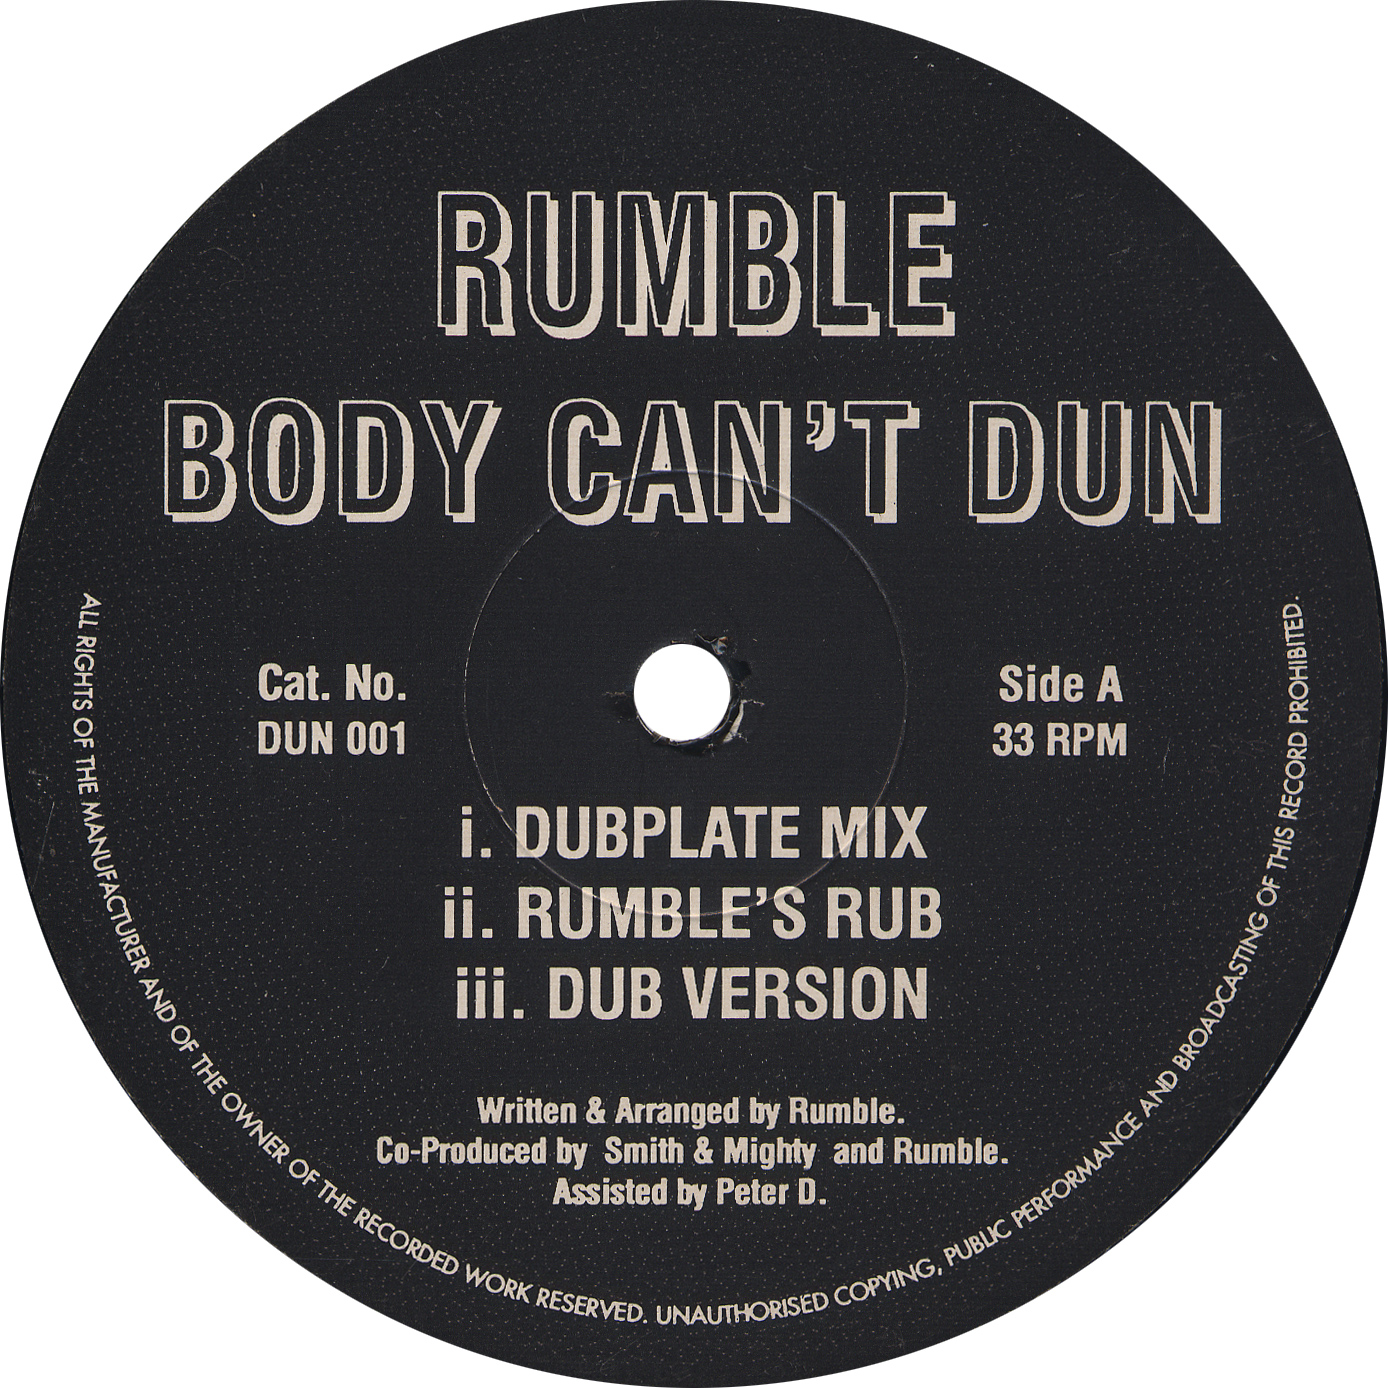 RUMBLE / BODY CAN'T DAN